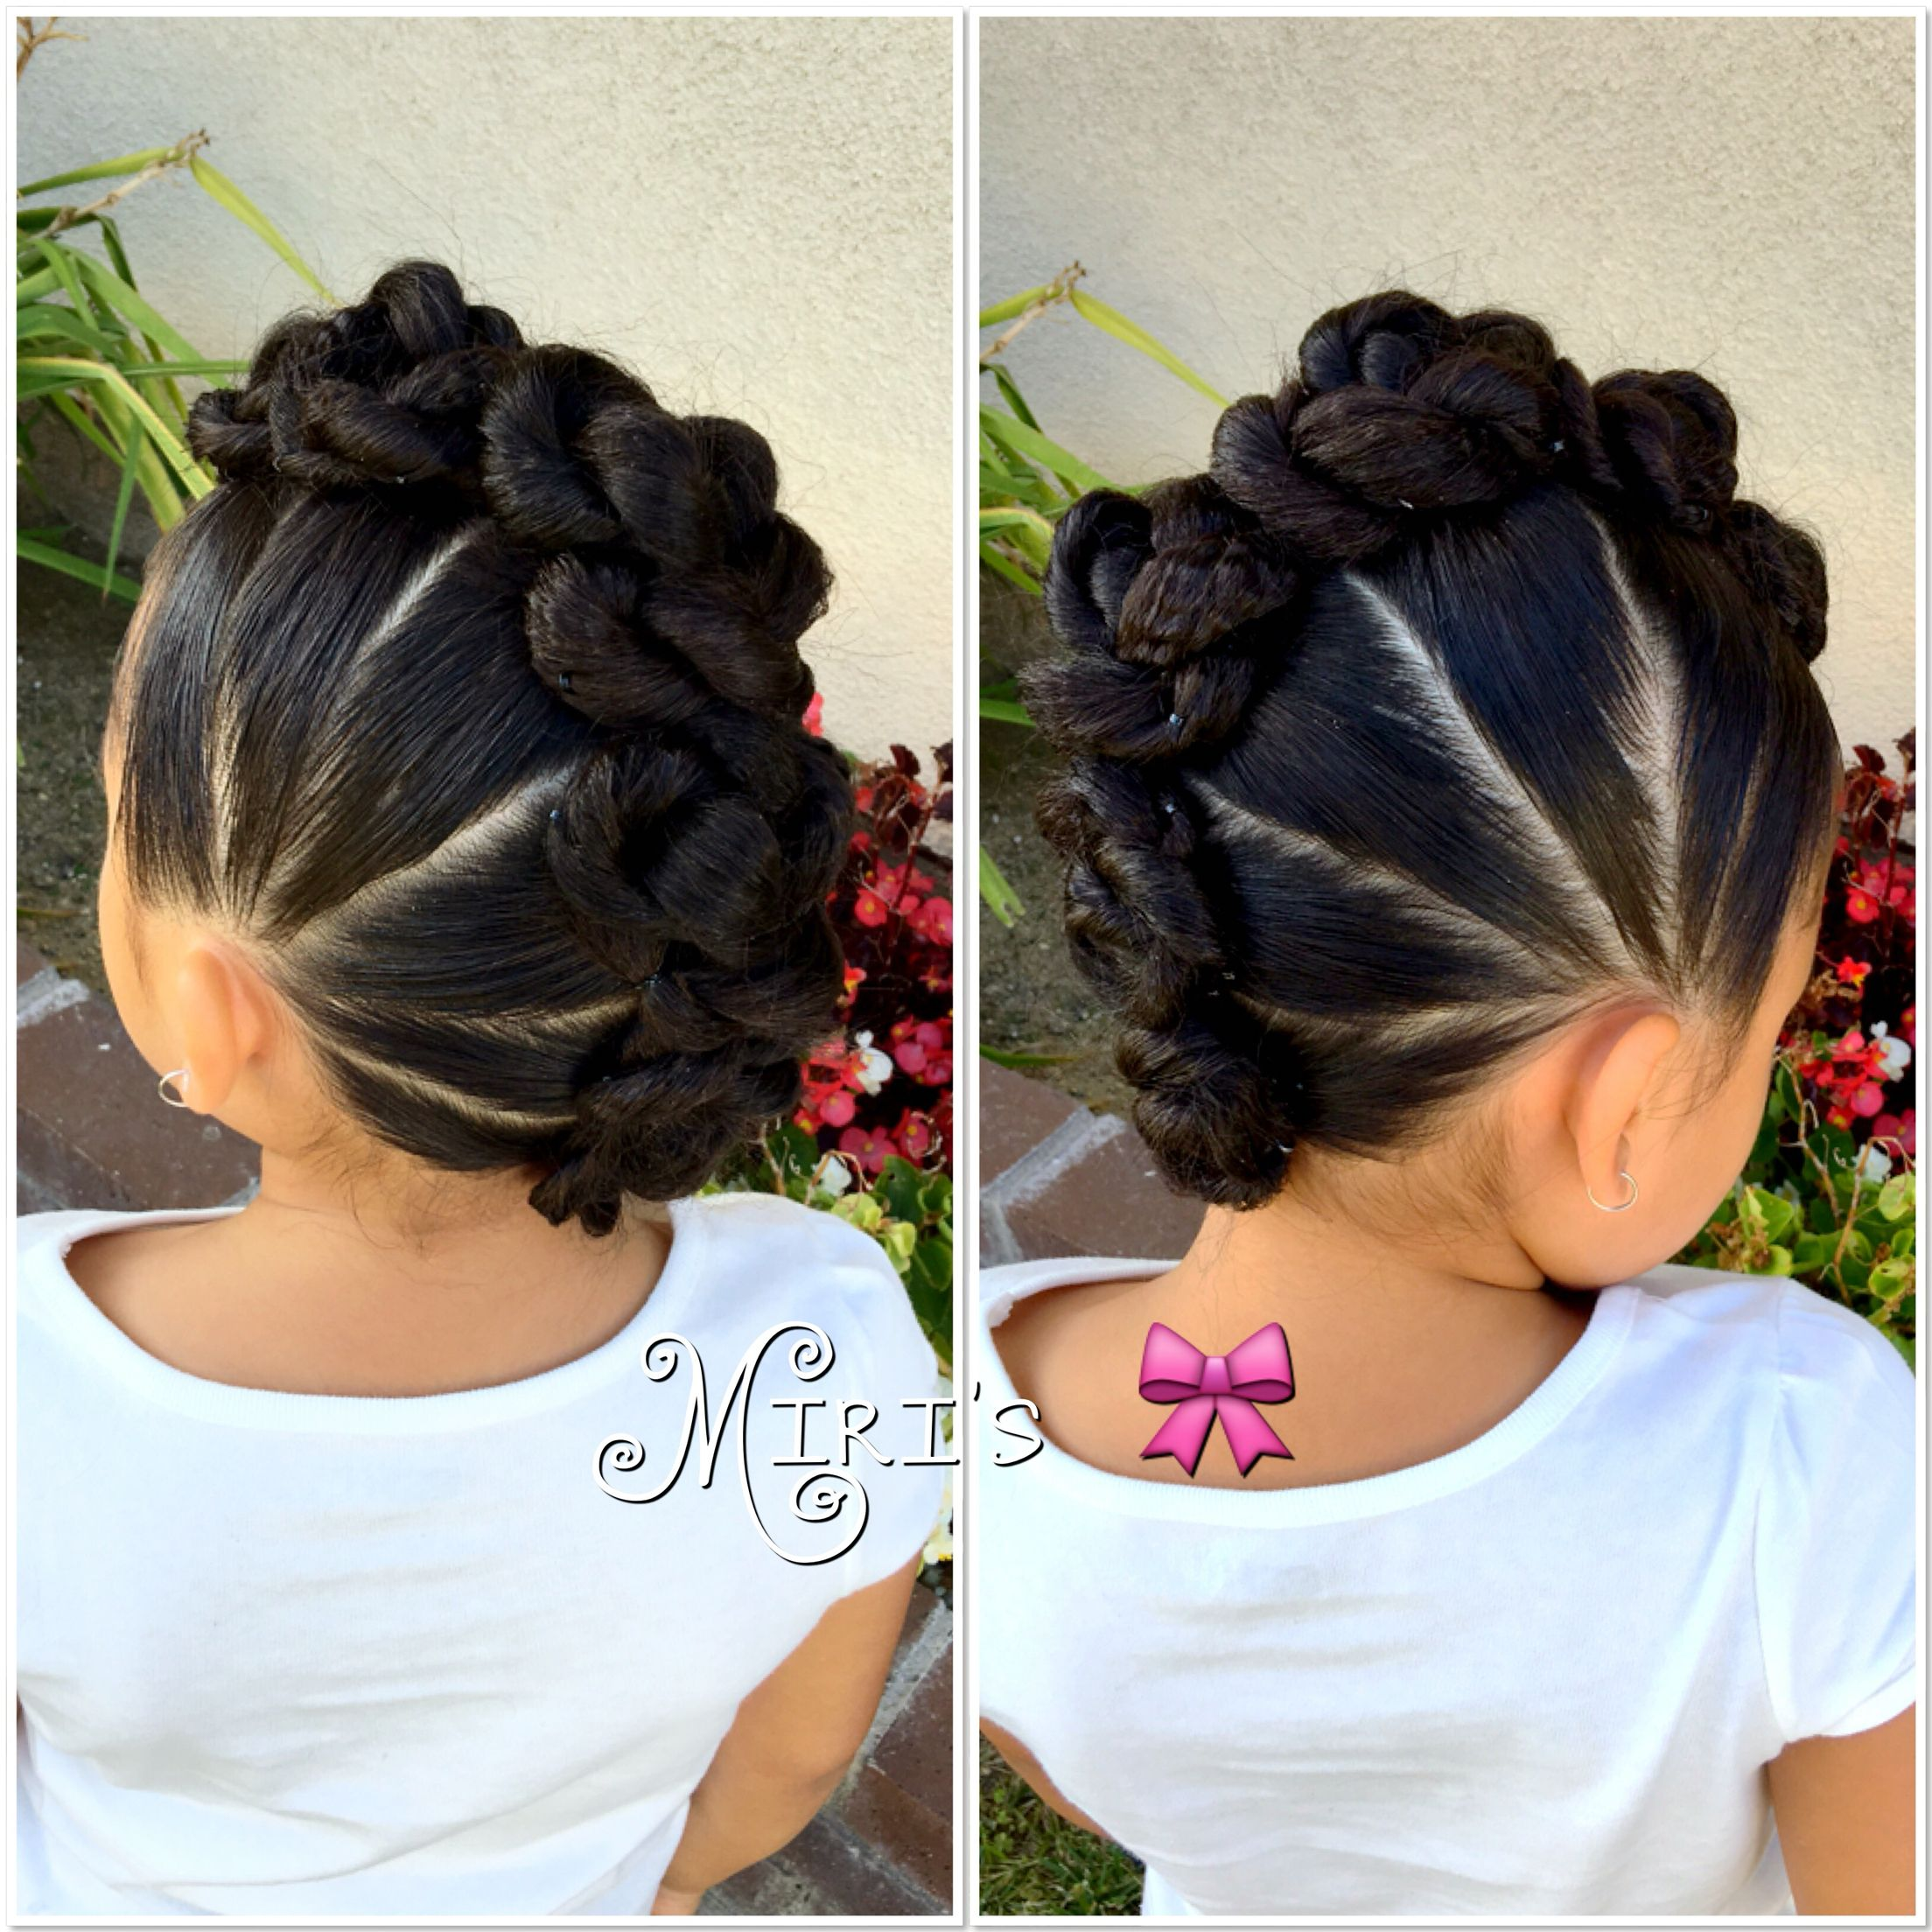 Mohawk with twists hair style for little girls styleus for kimora